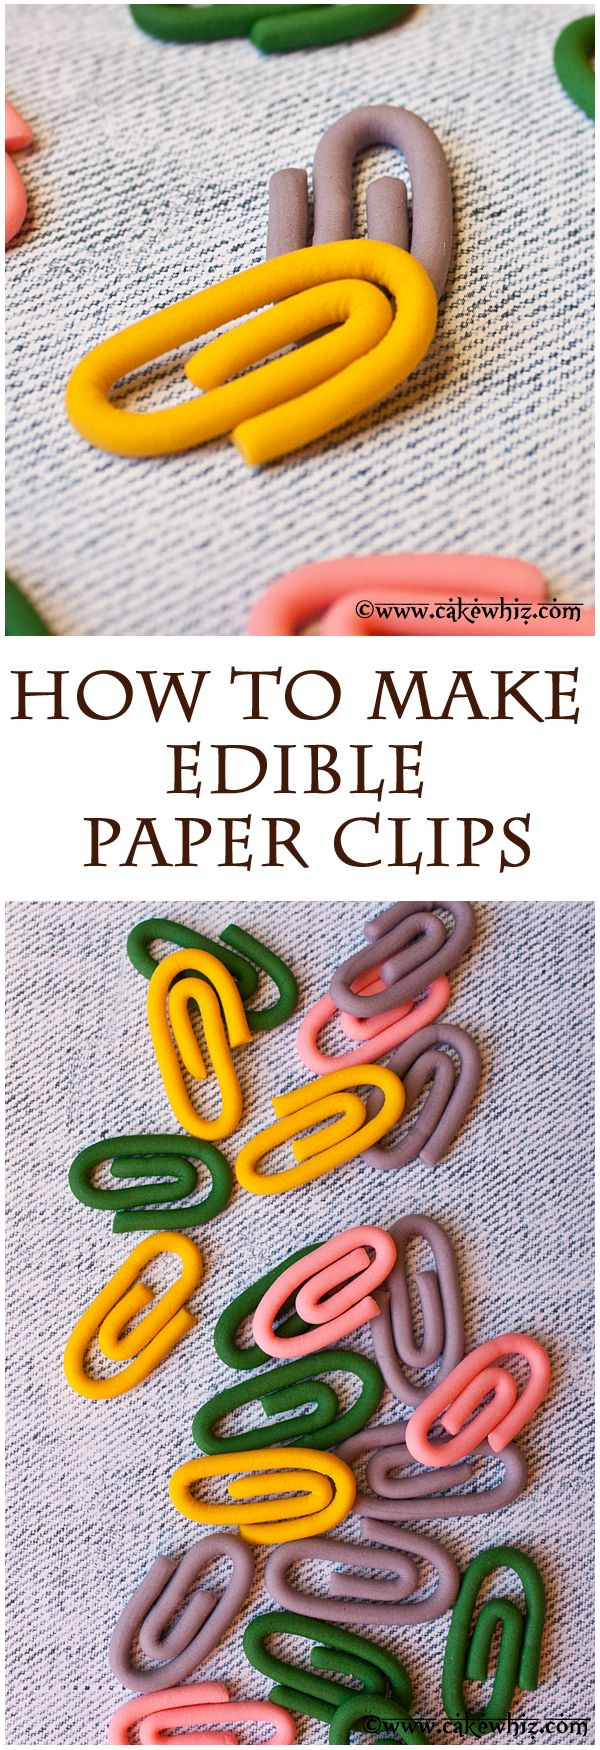 How to make SUPER EASY edible fondant paper clips. Great for decorating school or office themed cakes and cupcakes! From cakewhiz.com